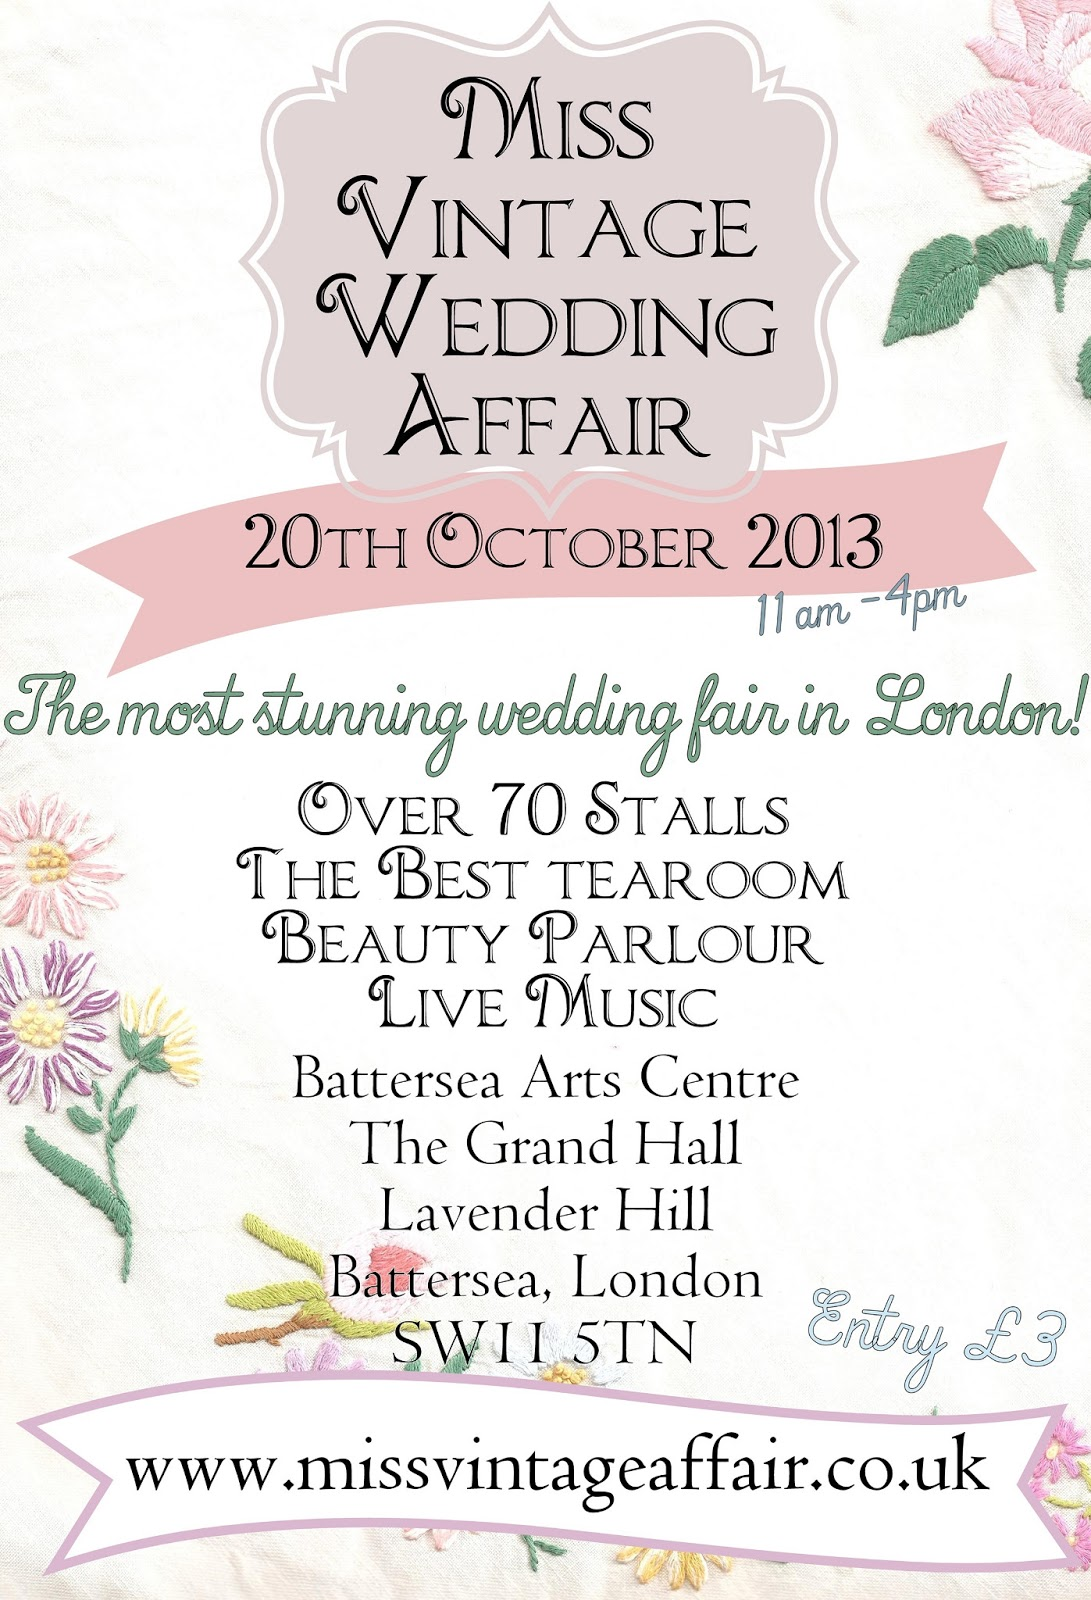 Quirky Vintage Loving Brides Are In For A Treat As The Famous Miss Wedding Affair Returns To London Fourth Run